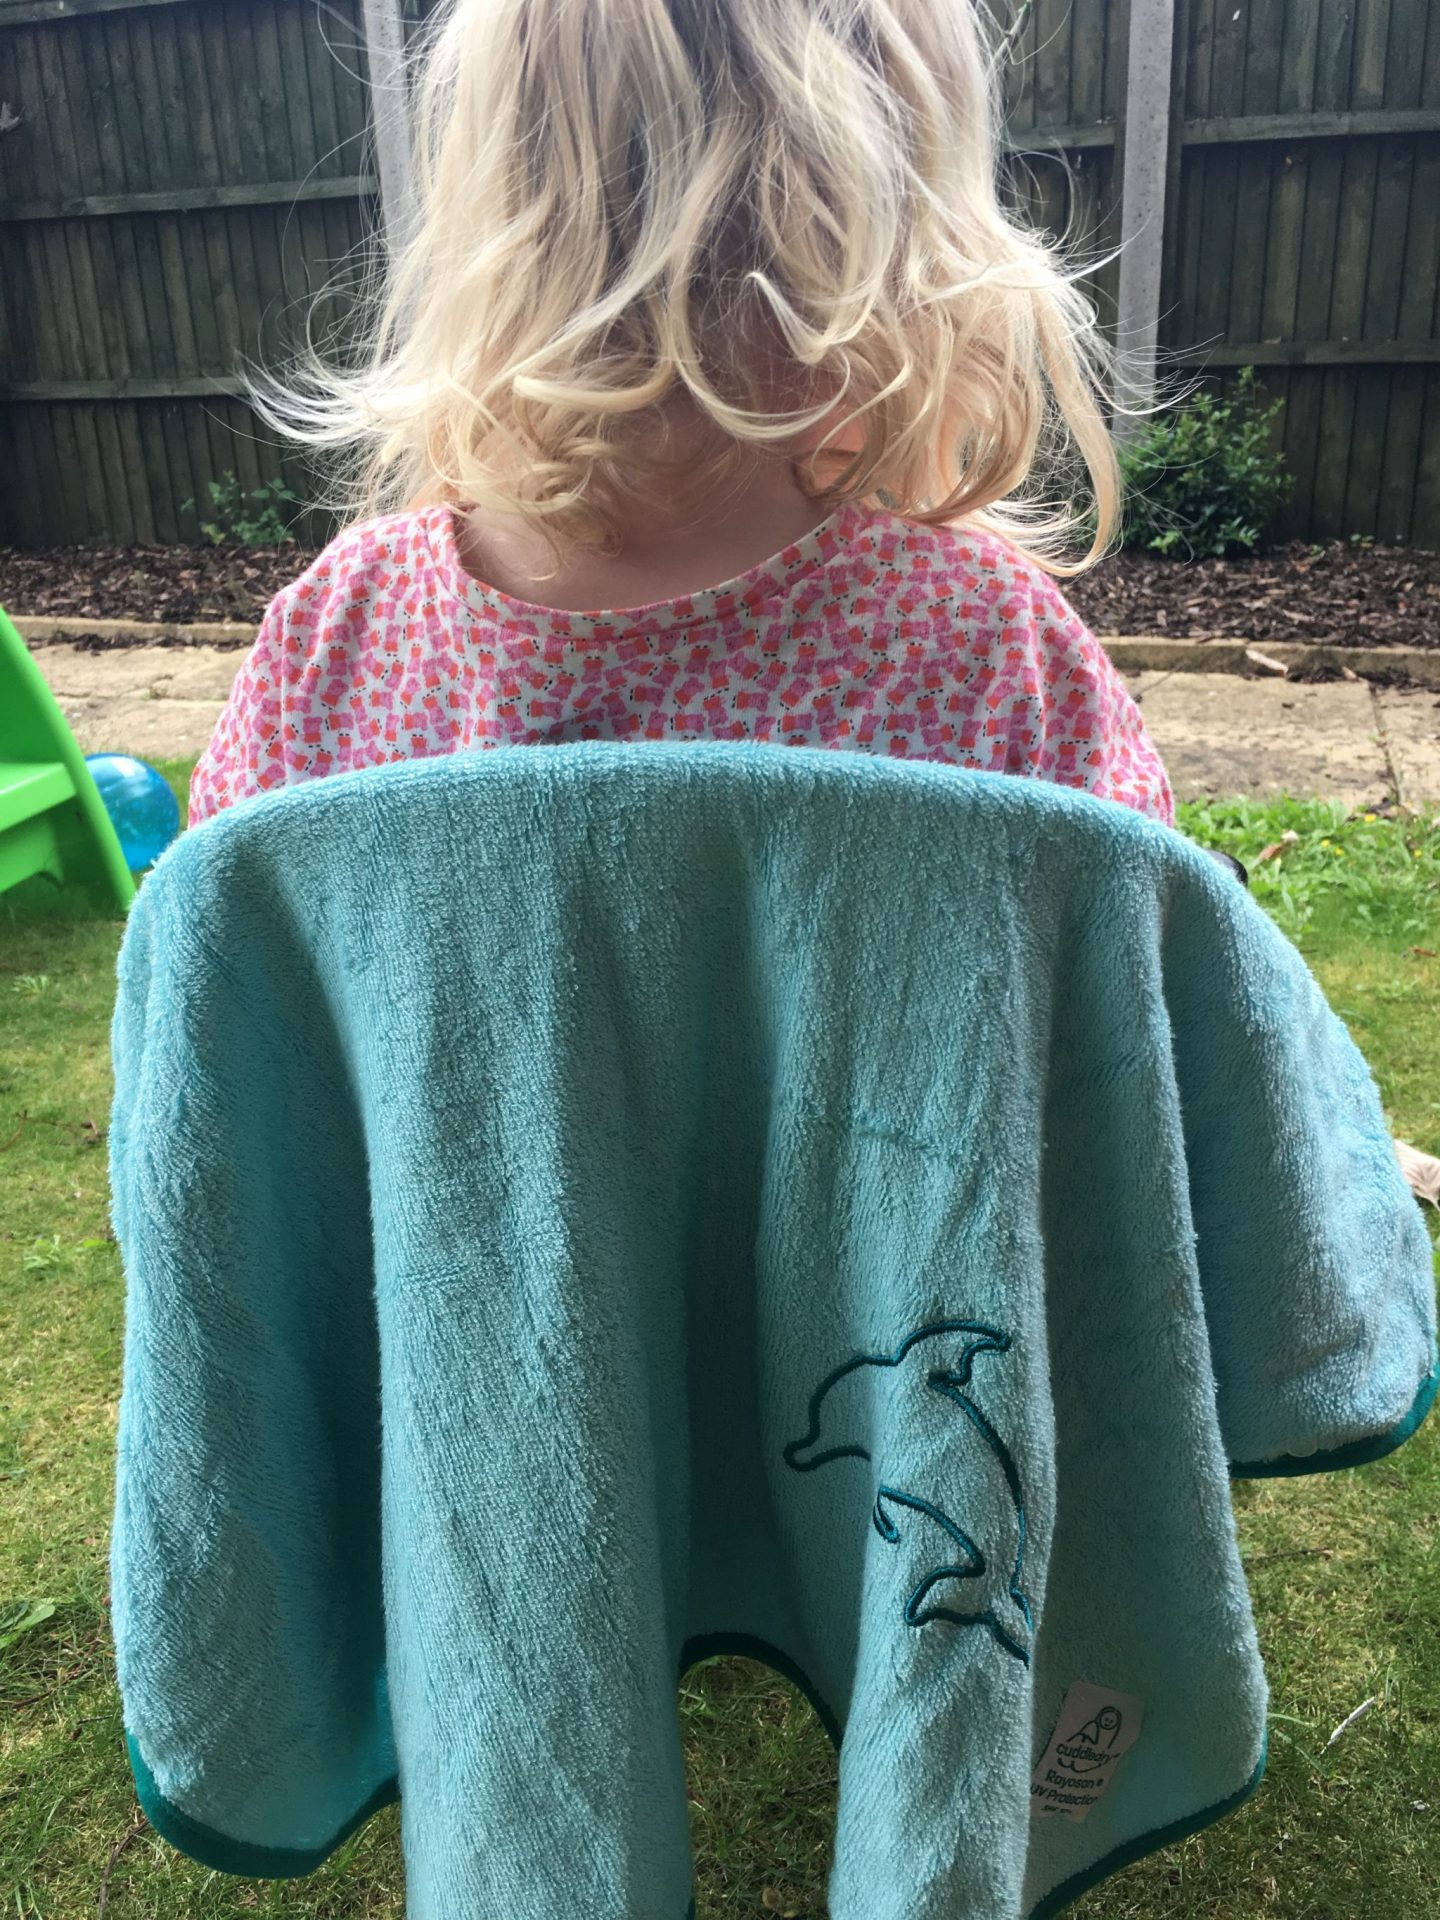 Cuddledry SPF50 poncho towel in aqua/turquoise